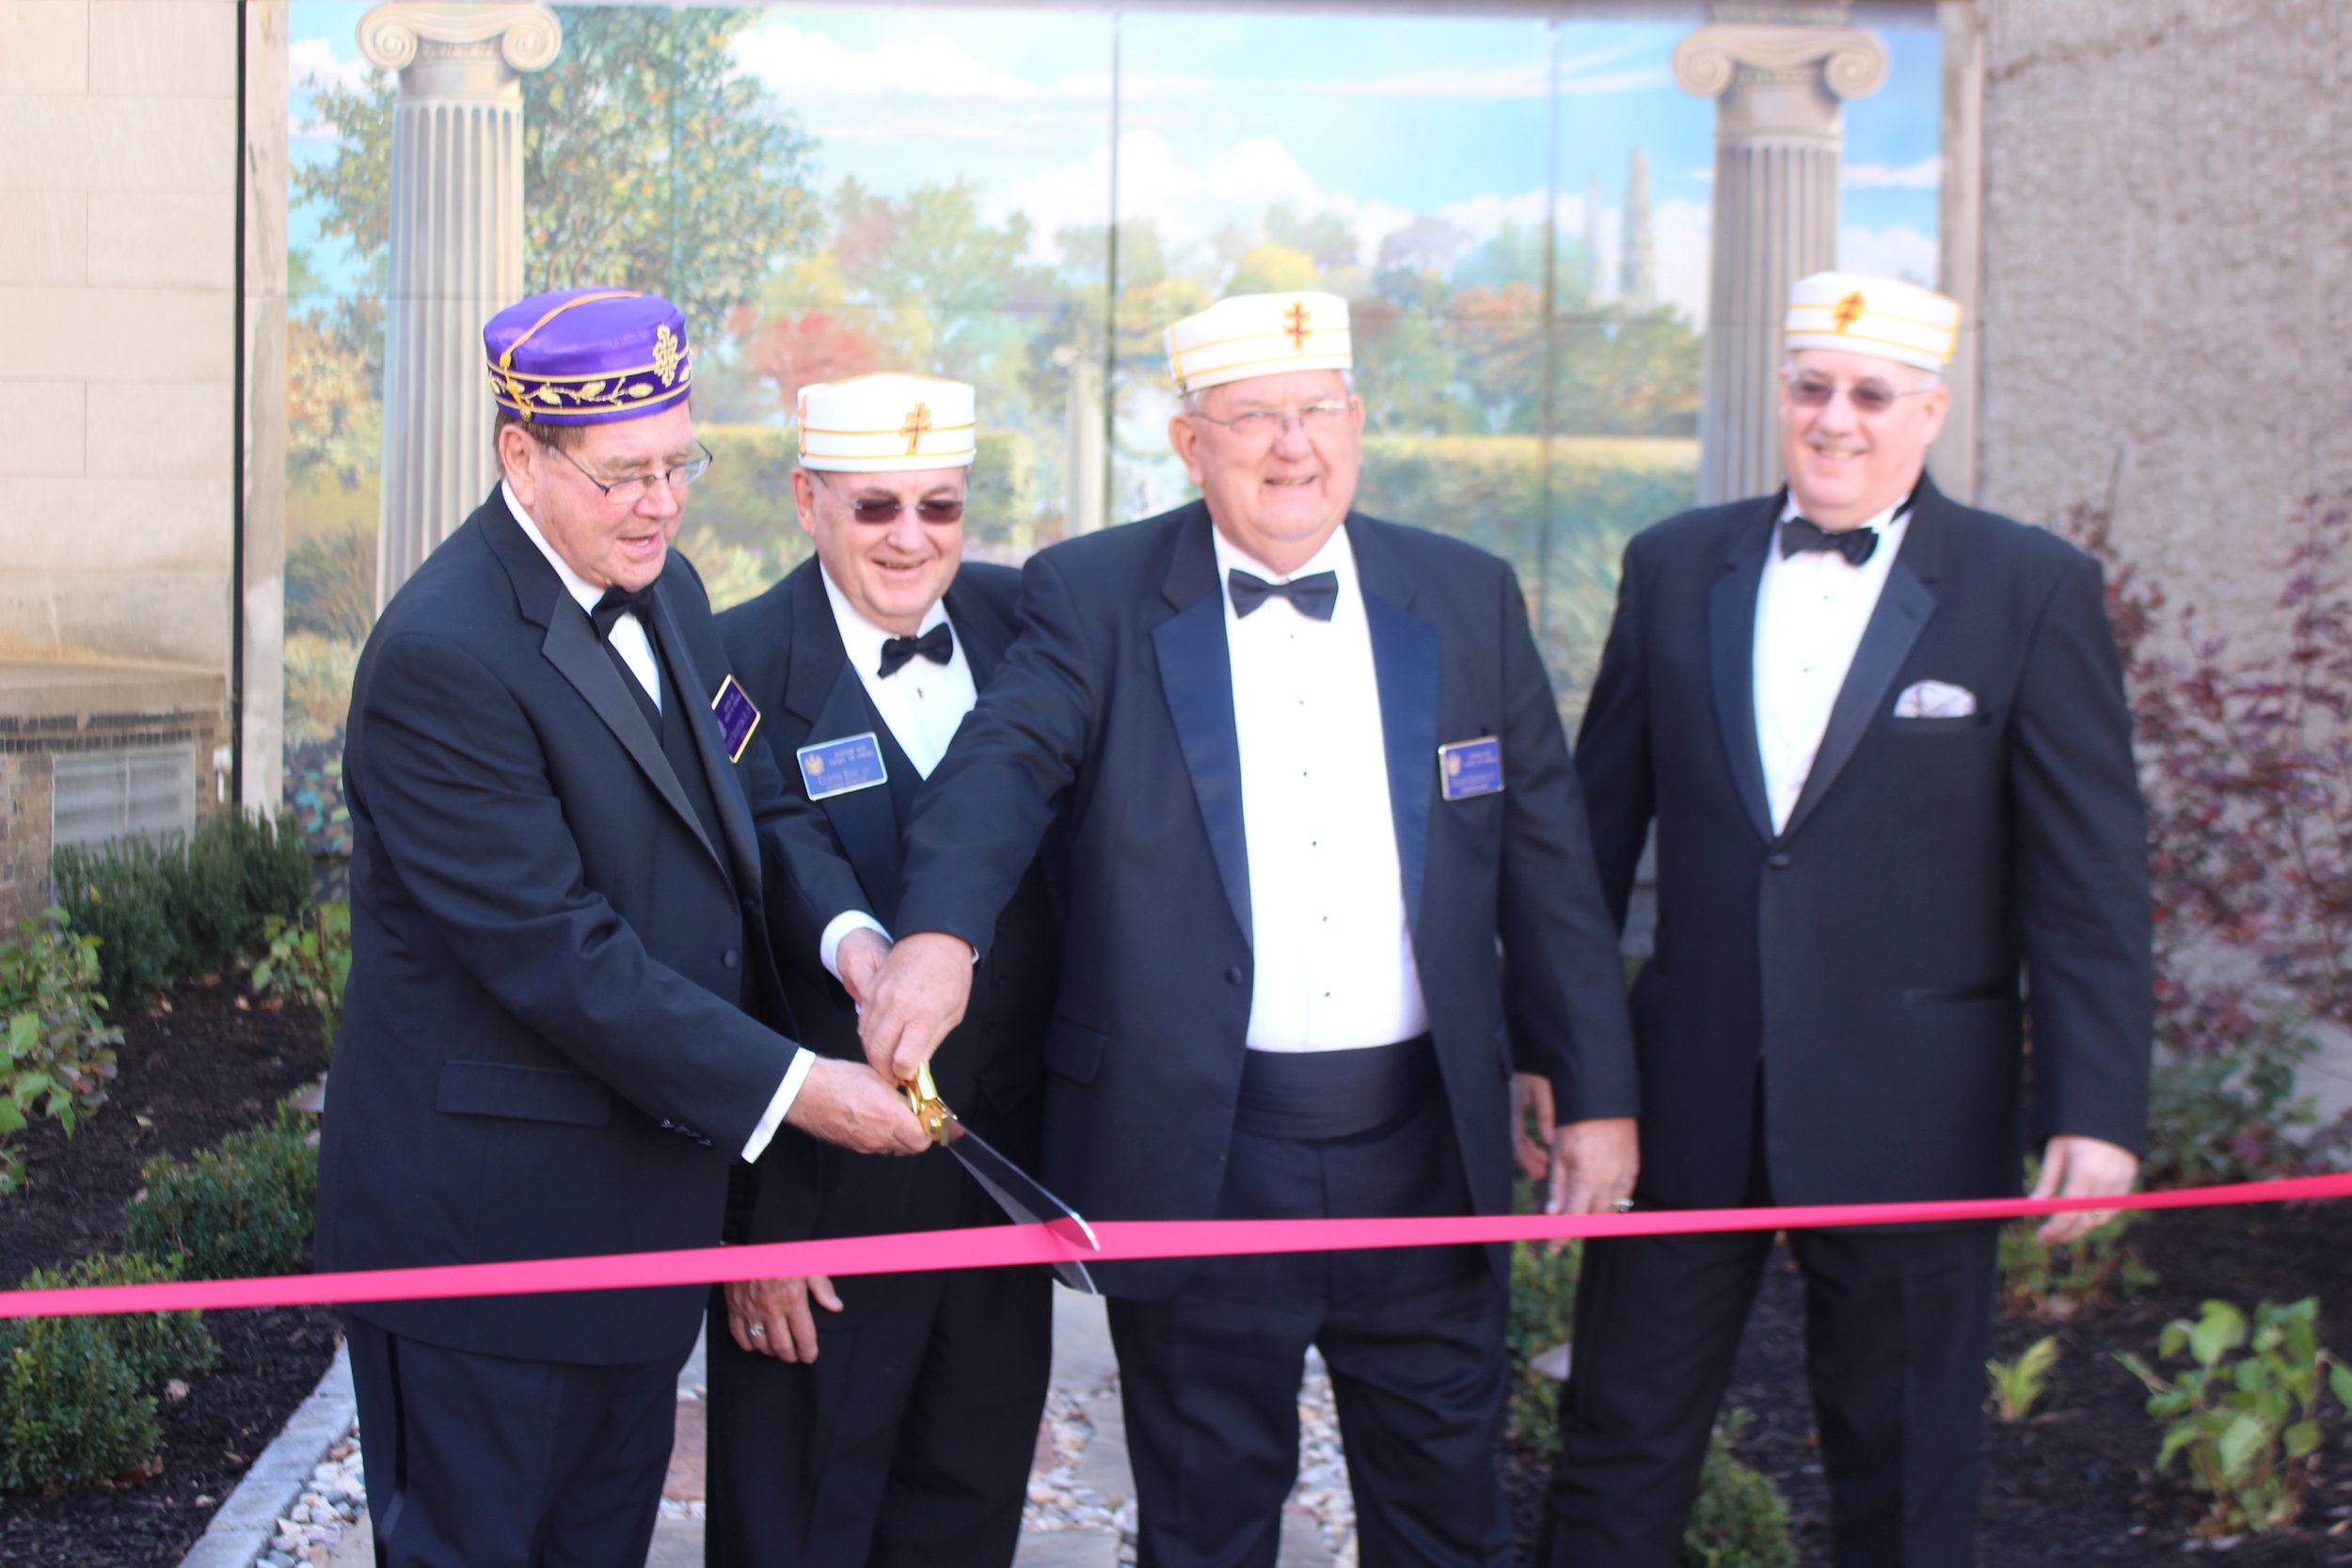 Charles Sederstrom, 33°, SGIG in Nebraska, with Curt Edic, 33°, General Secretary, Frank Kroupa, 33°, President of the Omaha Valley Cathedral Board, and Paul Rutherford, 33°, Personal Representative to the SGIG dedicate the Scottish Rite Mural and Garden in October, 2015.